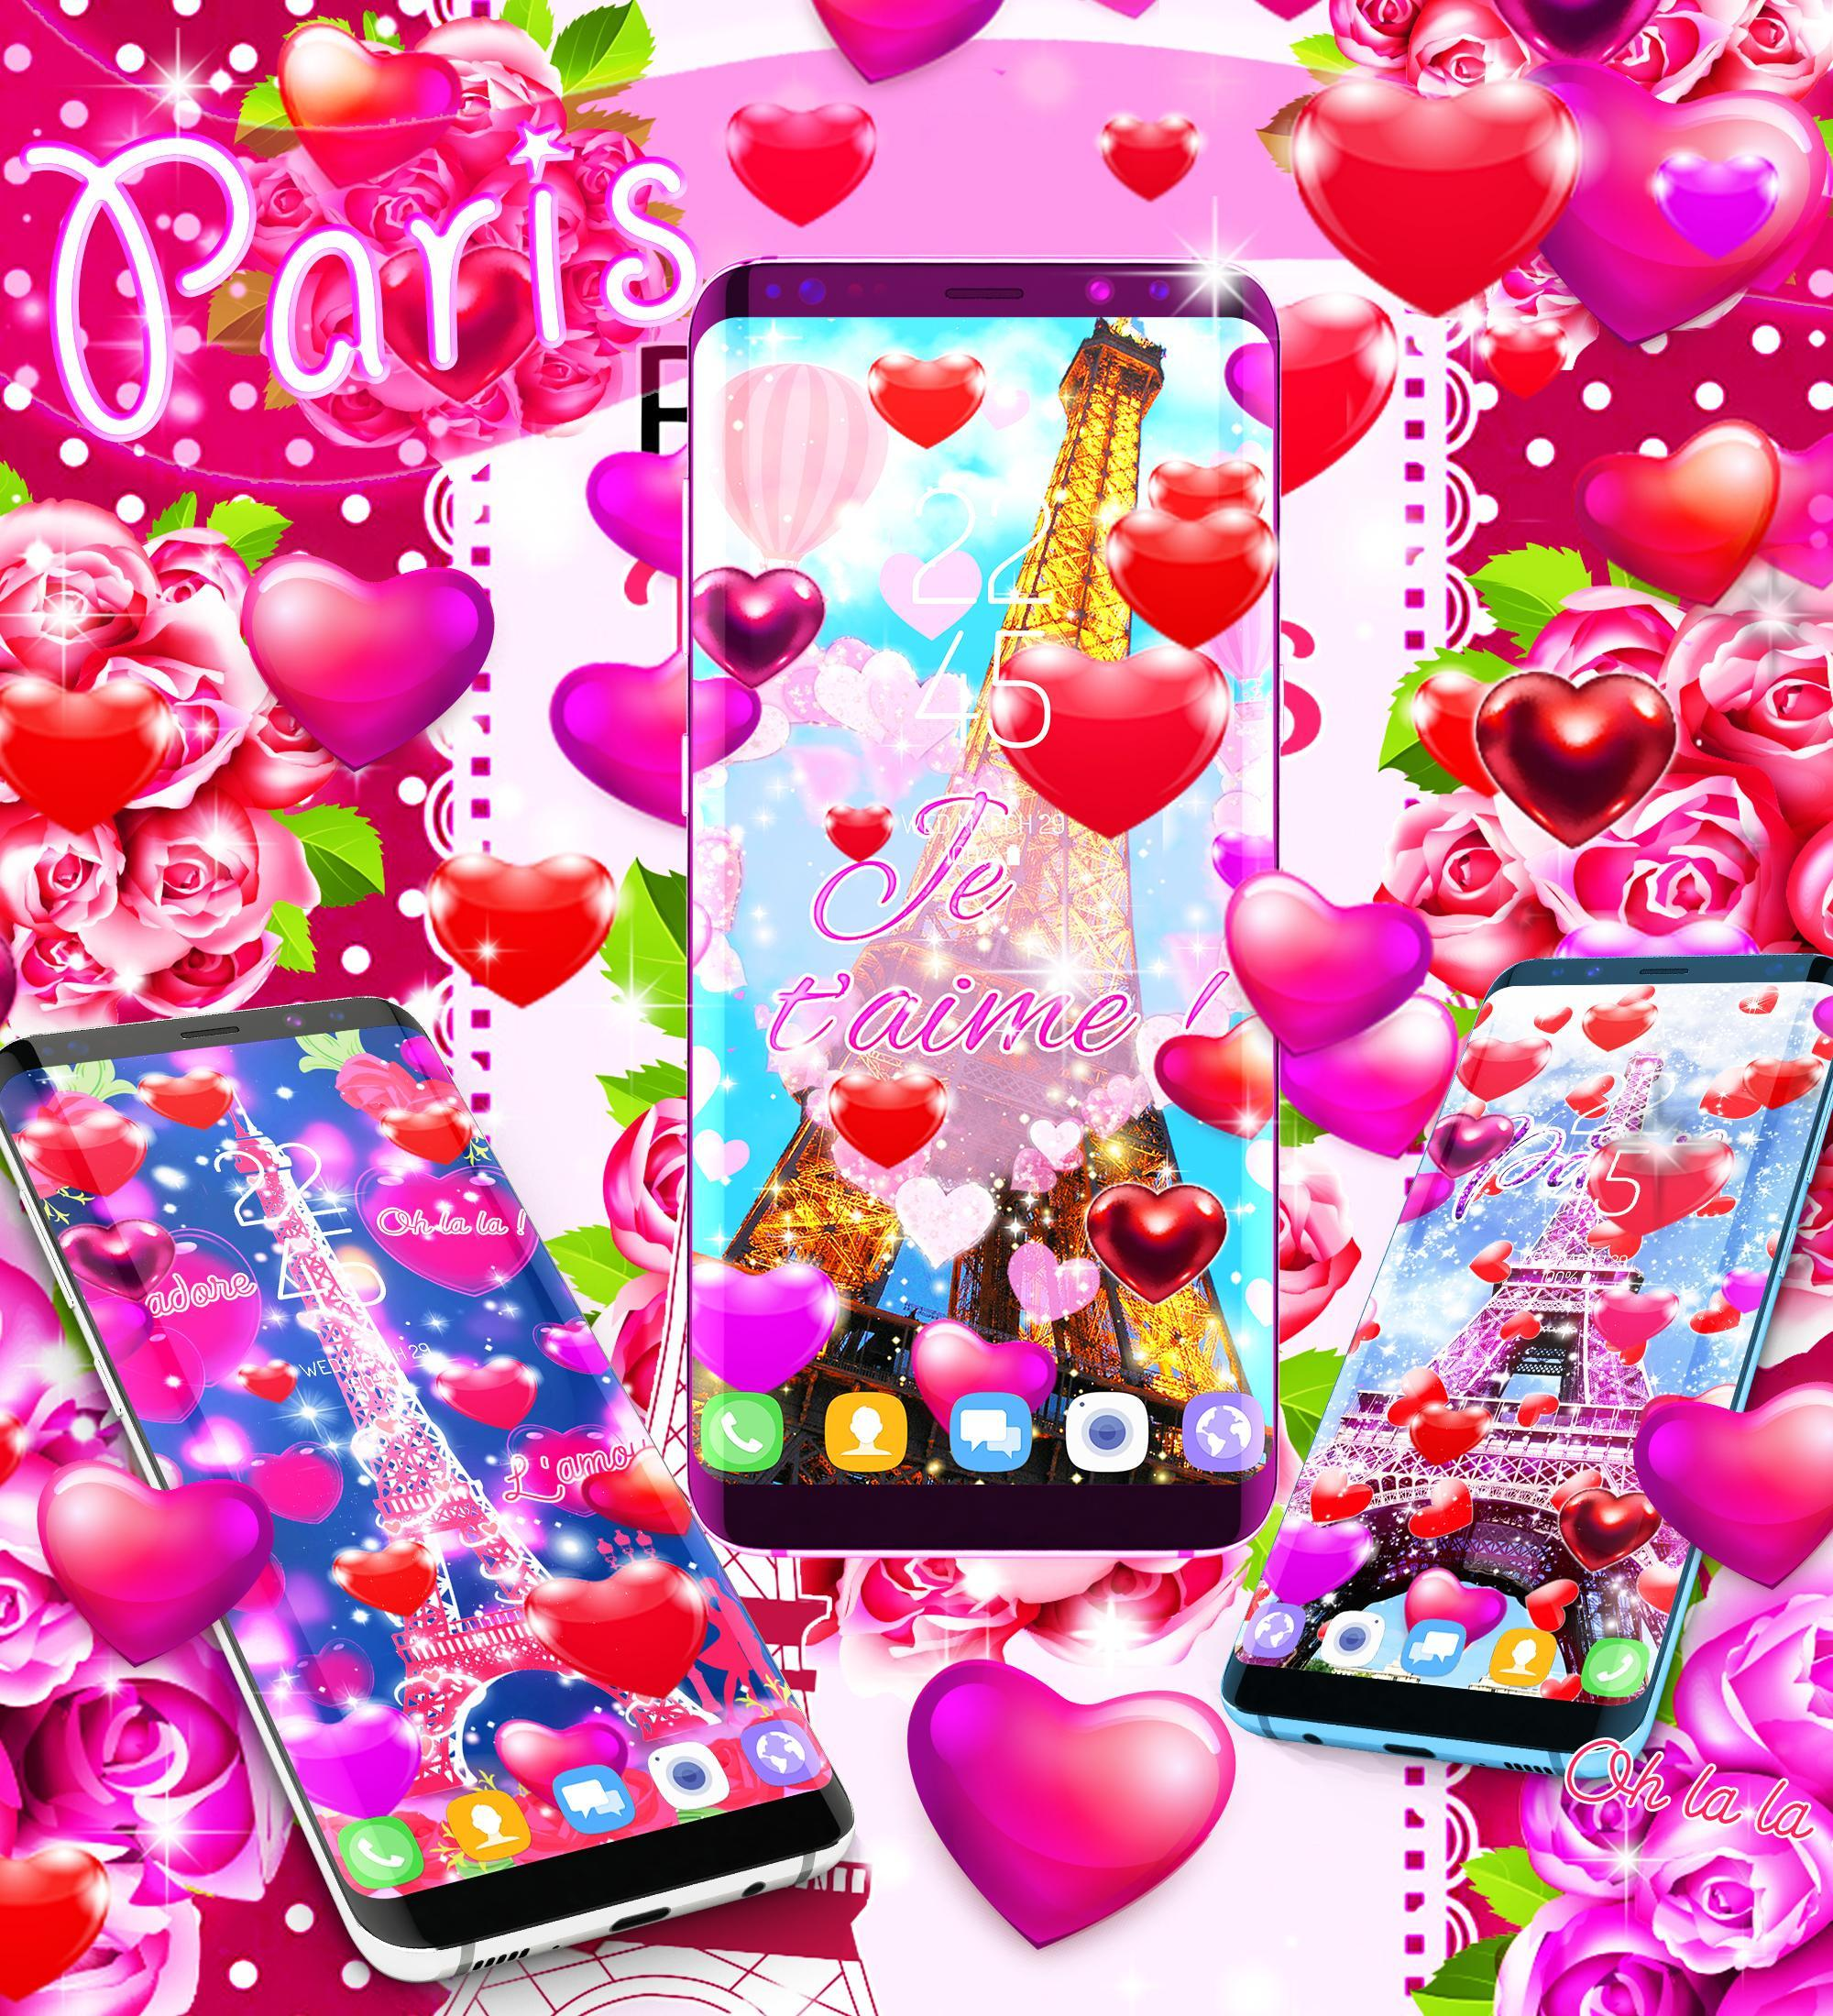 Paris Baru Cinta Wallpaper Hidup For Android APK Download